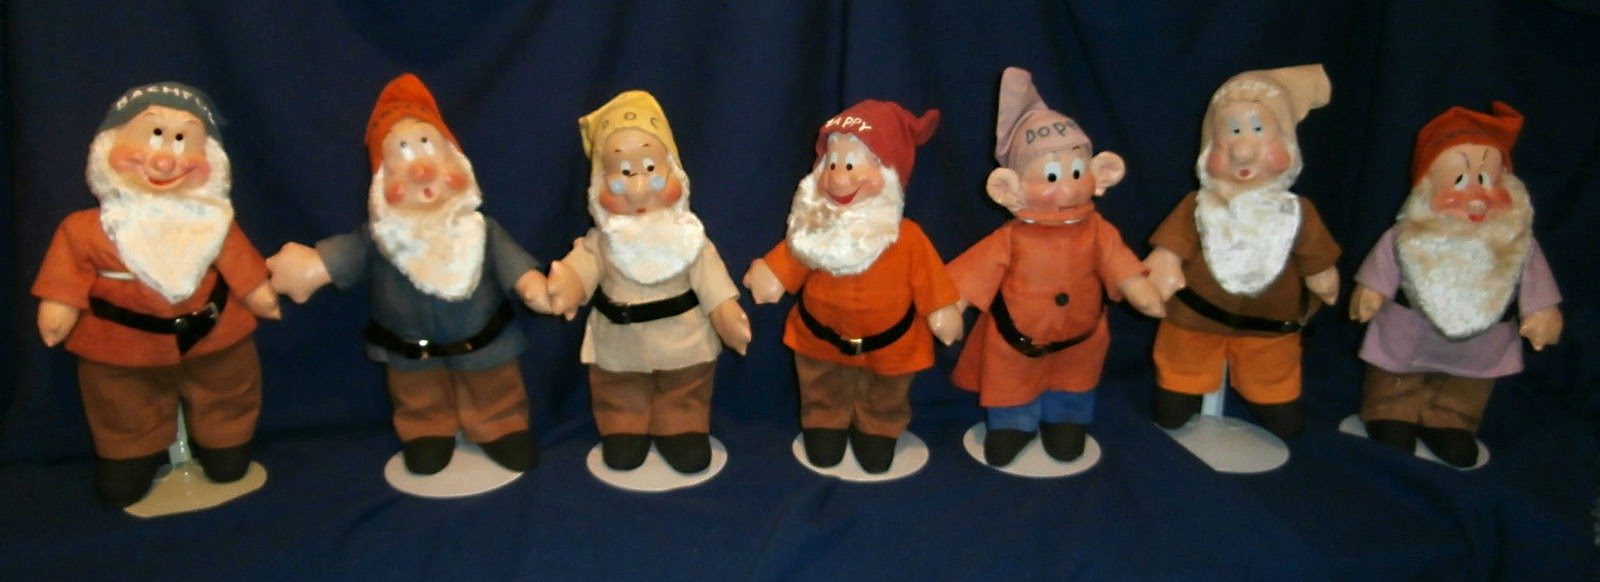 Filmic Light - Snow White Archive: Ideal Snow With Cloth Dolls